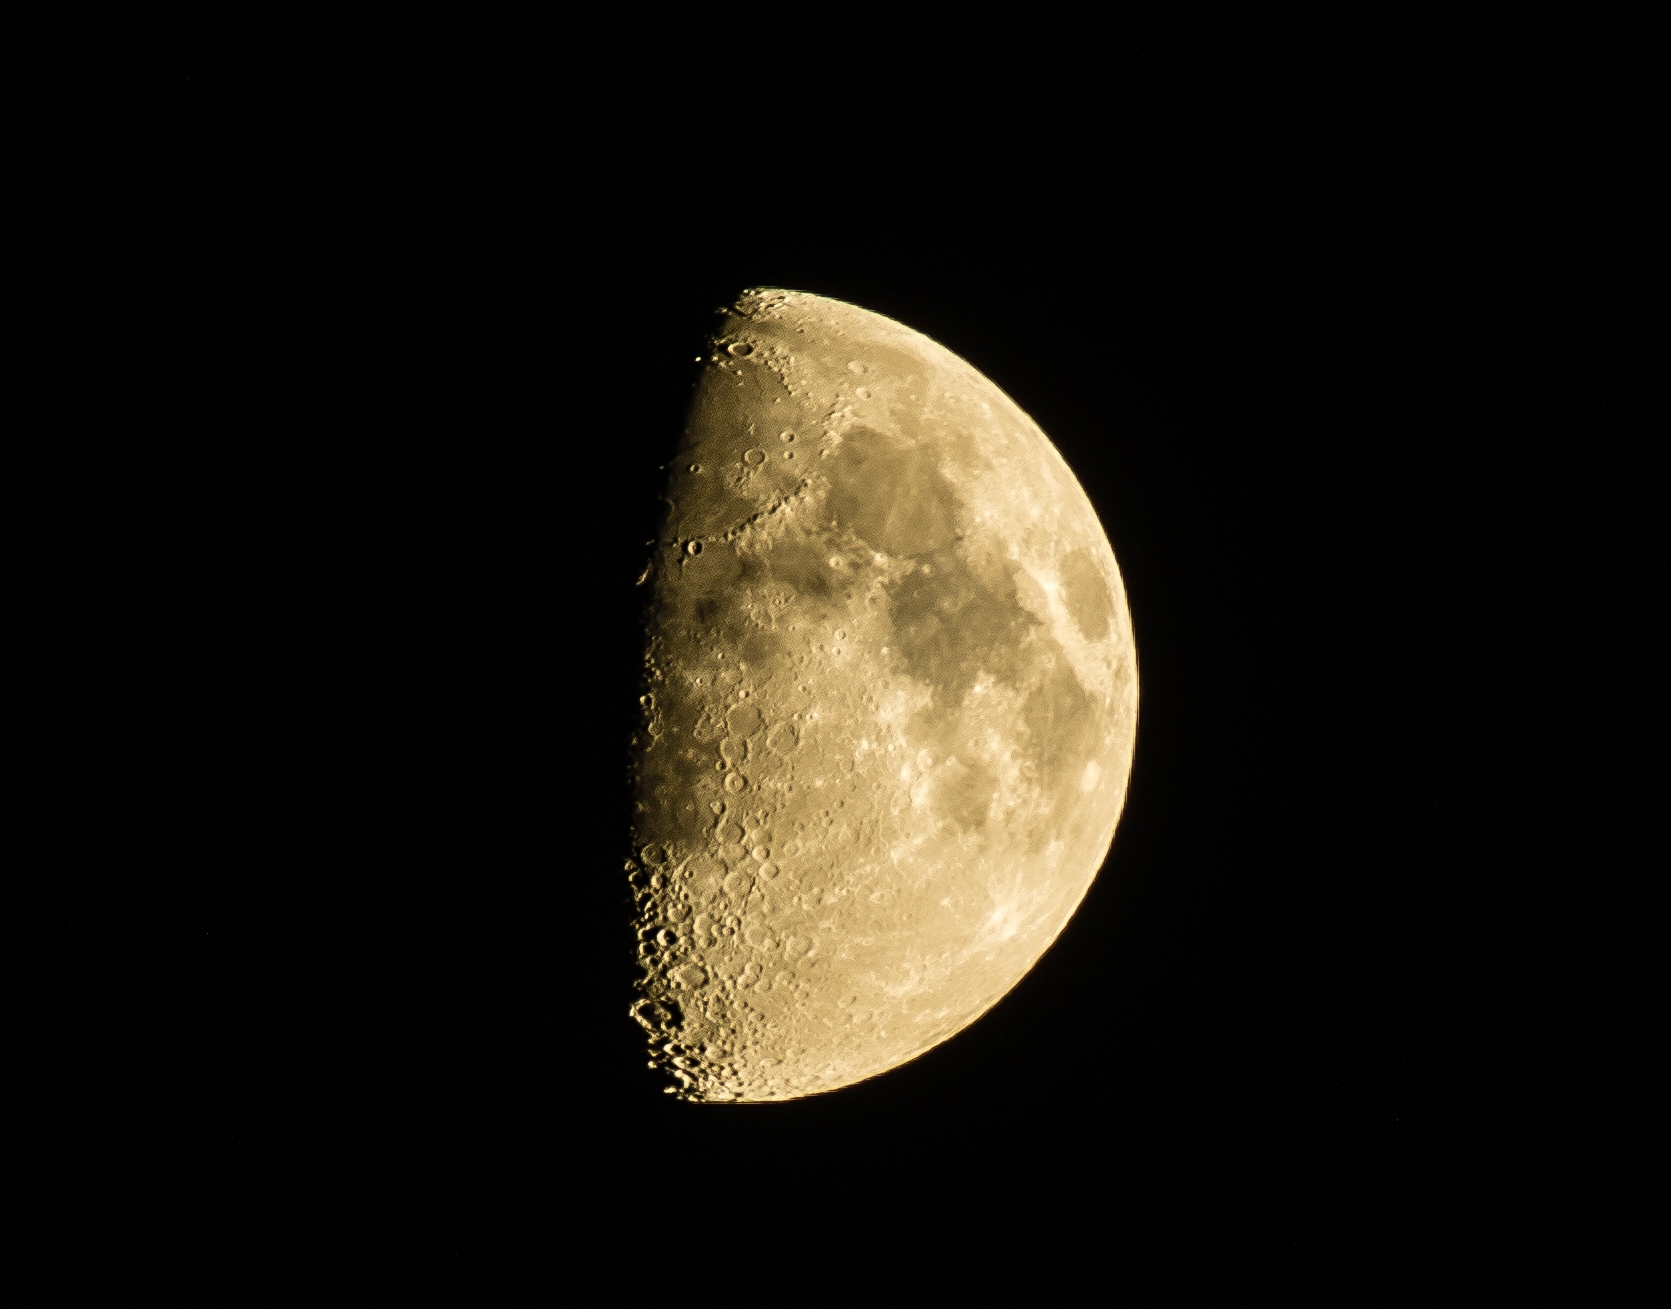 Moon, using DA300 and 1.4 teleconverter, K5, 200ASA, post processed in Lightroom